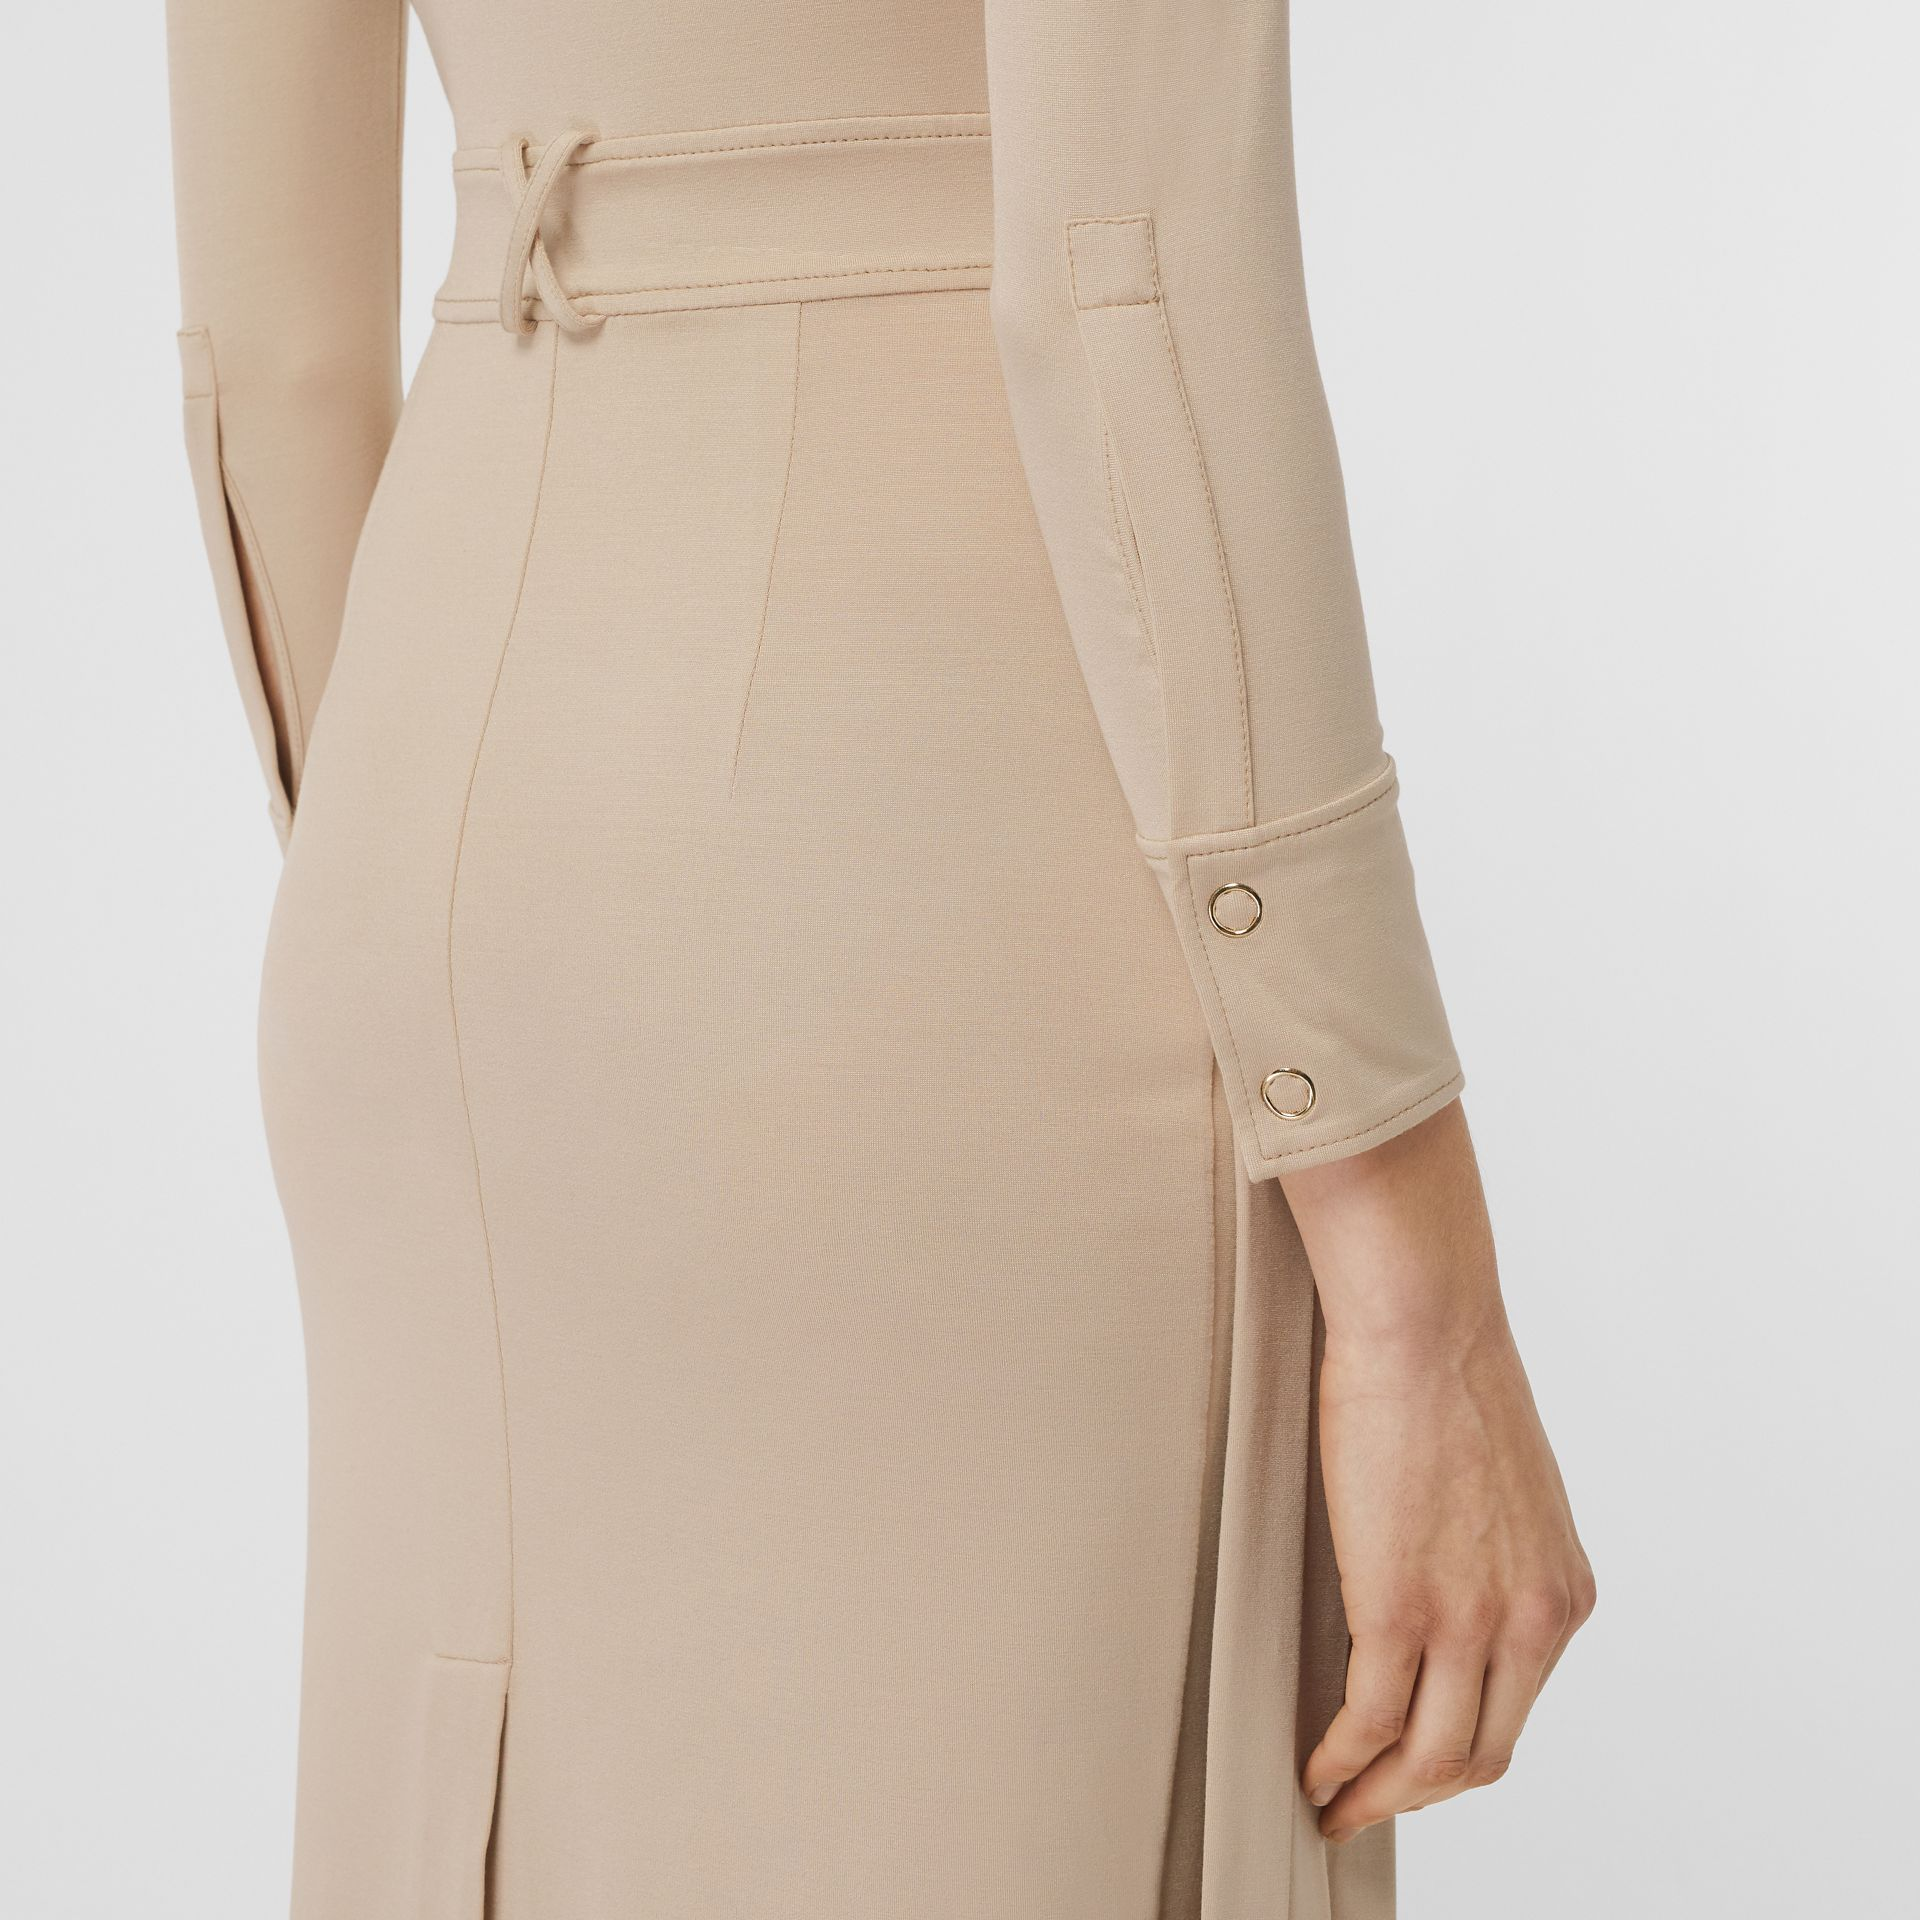 Long-sleeve Pleated Dress in Teddy Beige - Women | Burberry - gallery image 1